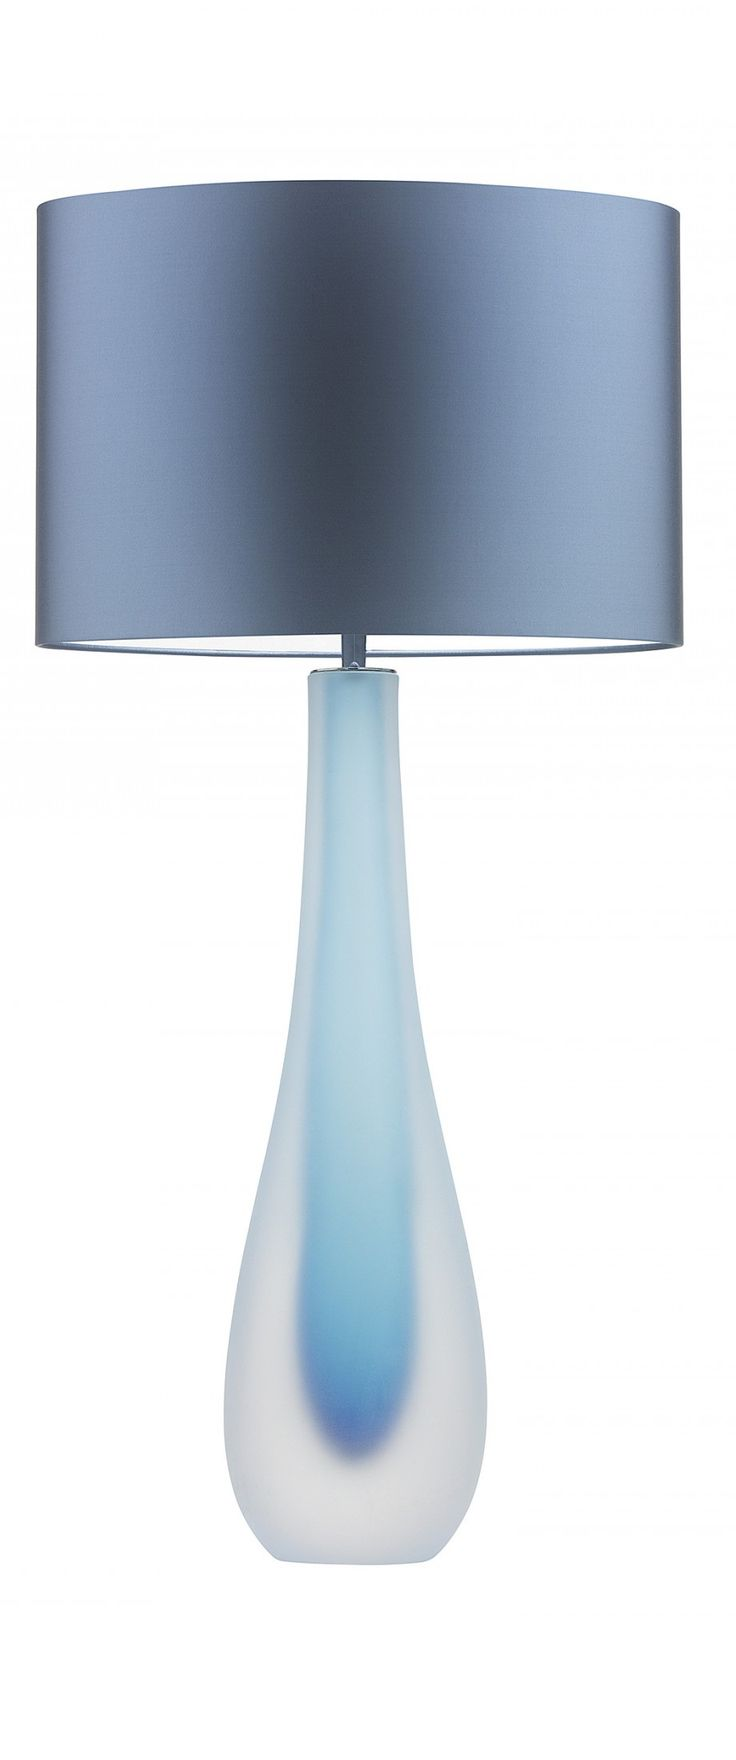 Teal lamp shades table lamps style light design most decorative - Instyle Decor Com Hollywood Over 5 000 Inspirations Now Online Luxury Furniture Mirrors Lighting Chandeliers Lamps Decorative Accessories Gifts